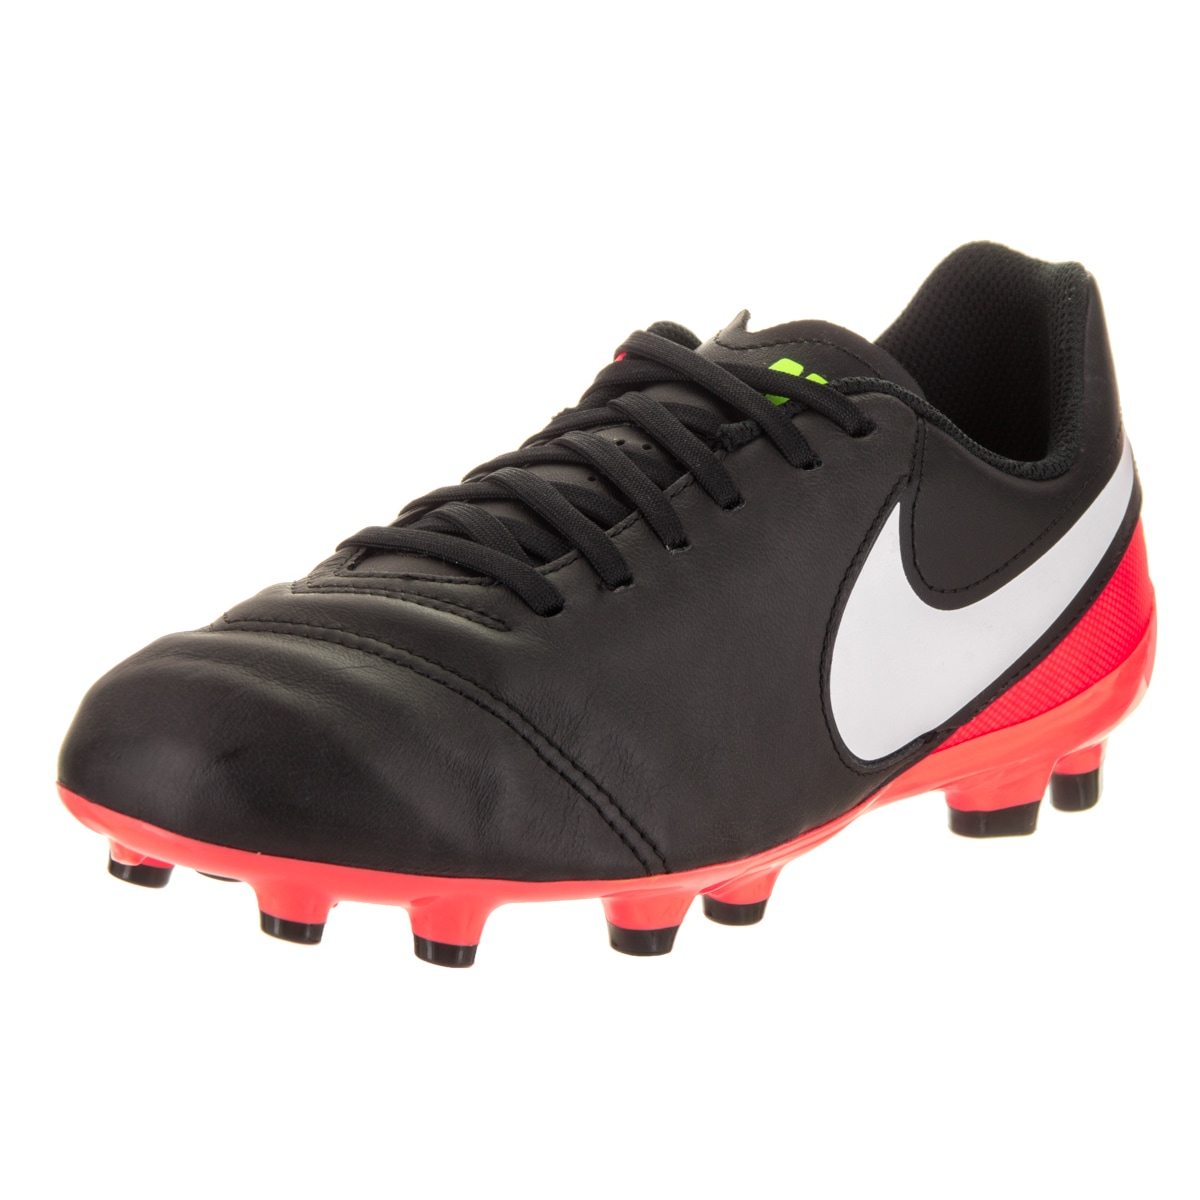 642431cb7237 Nike Kids' JR Tiempo Legend VI Fg Black Synthetic Leather Soccer Cleats